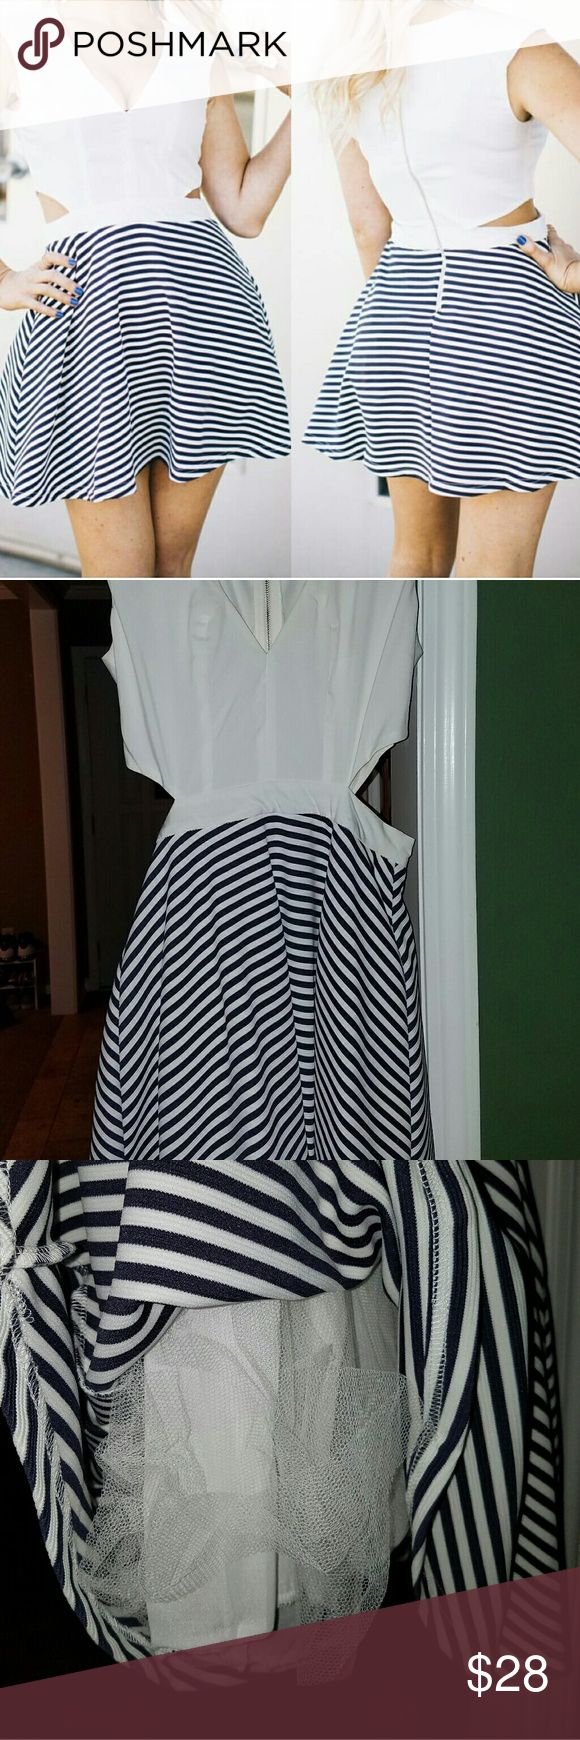 Ivory and Navy Striped Dress Gorgeous dress with v neck ivory top, cut outs on the sides and Navy Striped bottom that flares- tutu material underneath provides an umph. Stunning! Only worn once to wedding, received many compliments. Perfect condition. Dresses Wedding